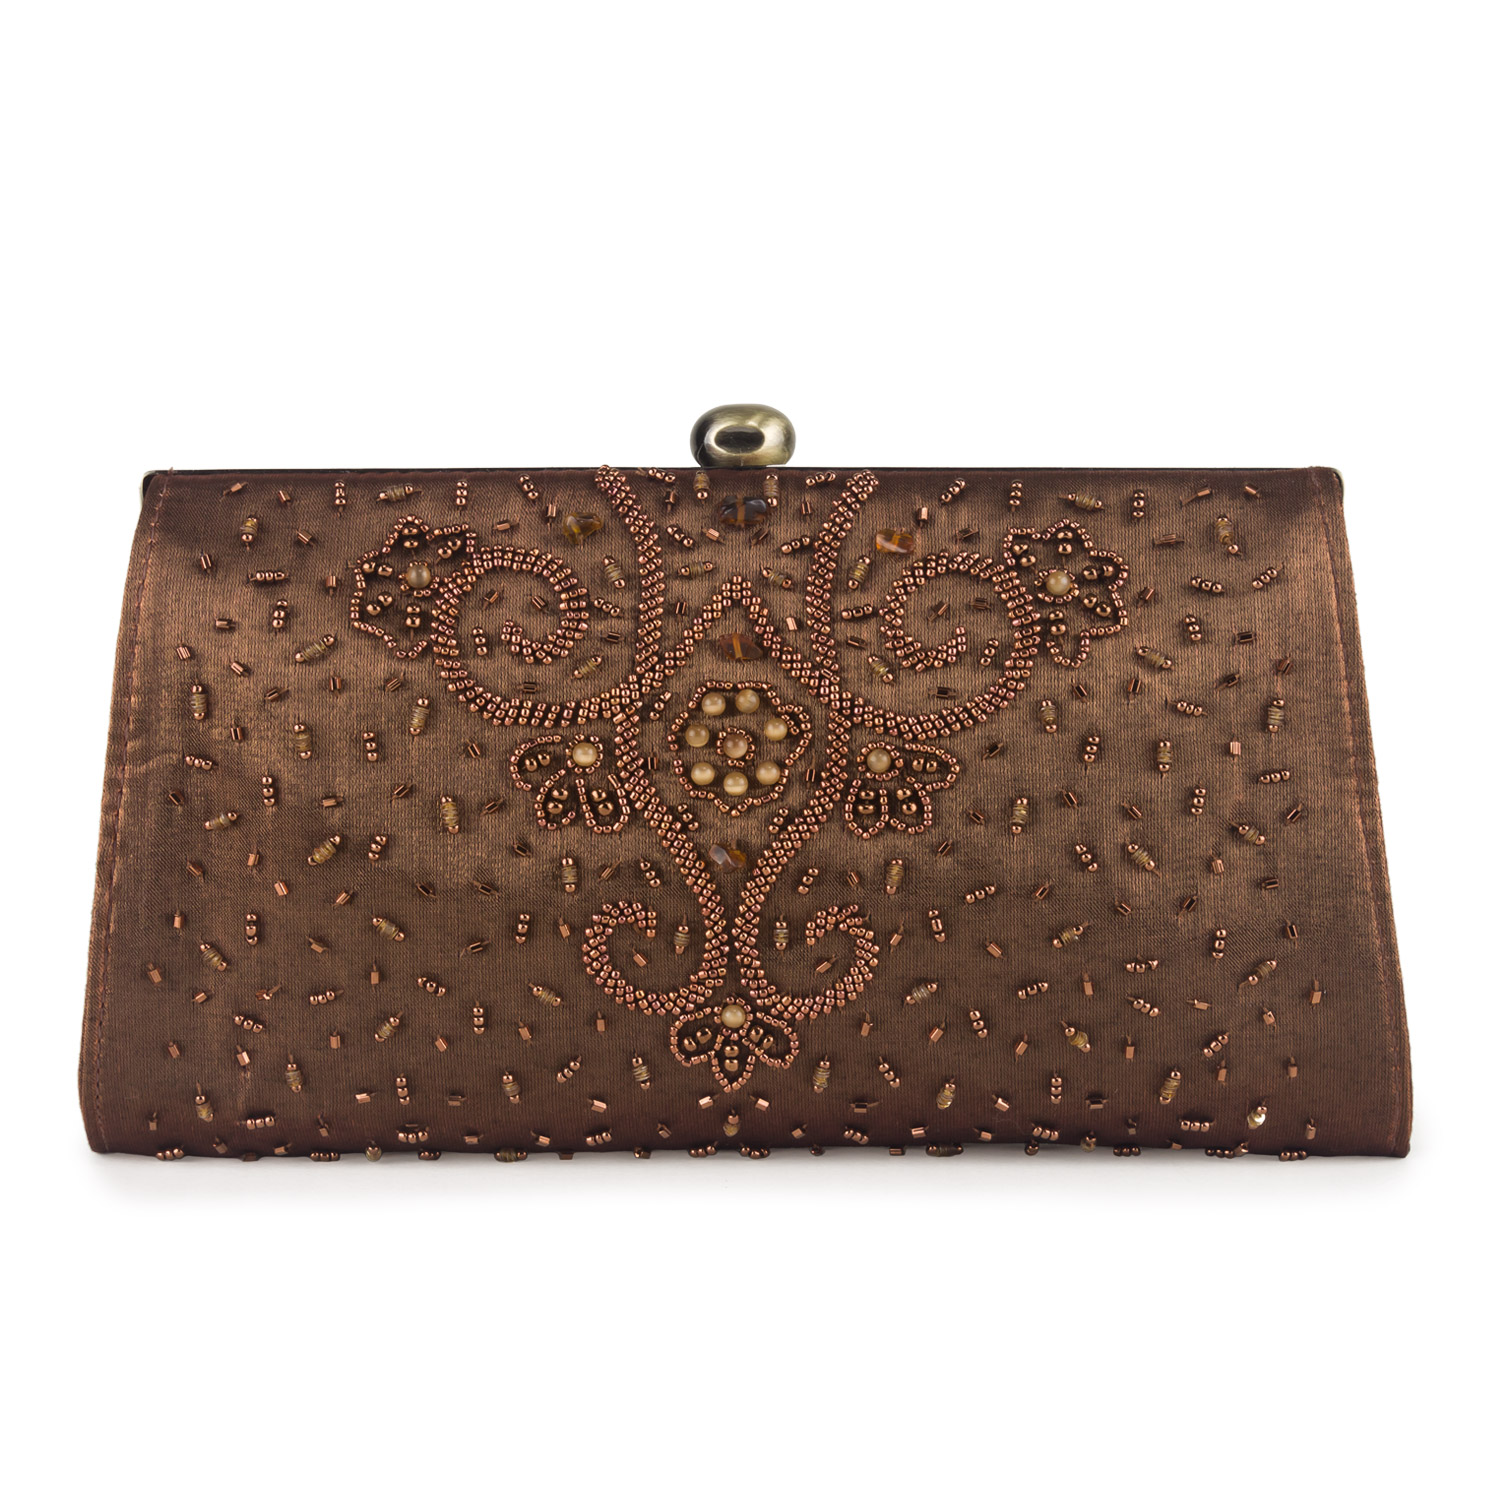 Essential Clutches & Pouches. Designer wallets, leather clutch purses, laser cut or beaded clutches – Anthropologie has clutches and designer wallets for women that come in numerous shapes and sizes that can match any personal style.